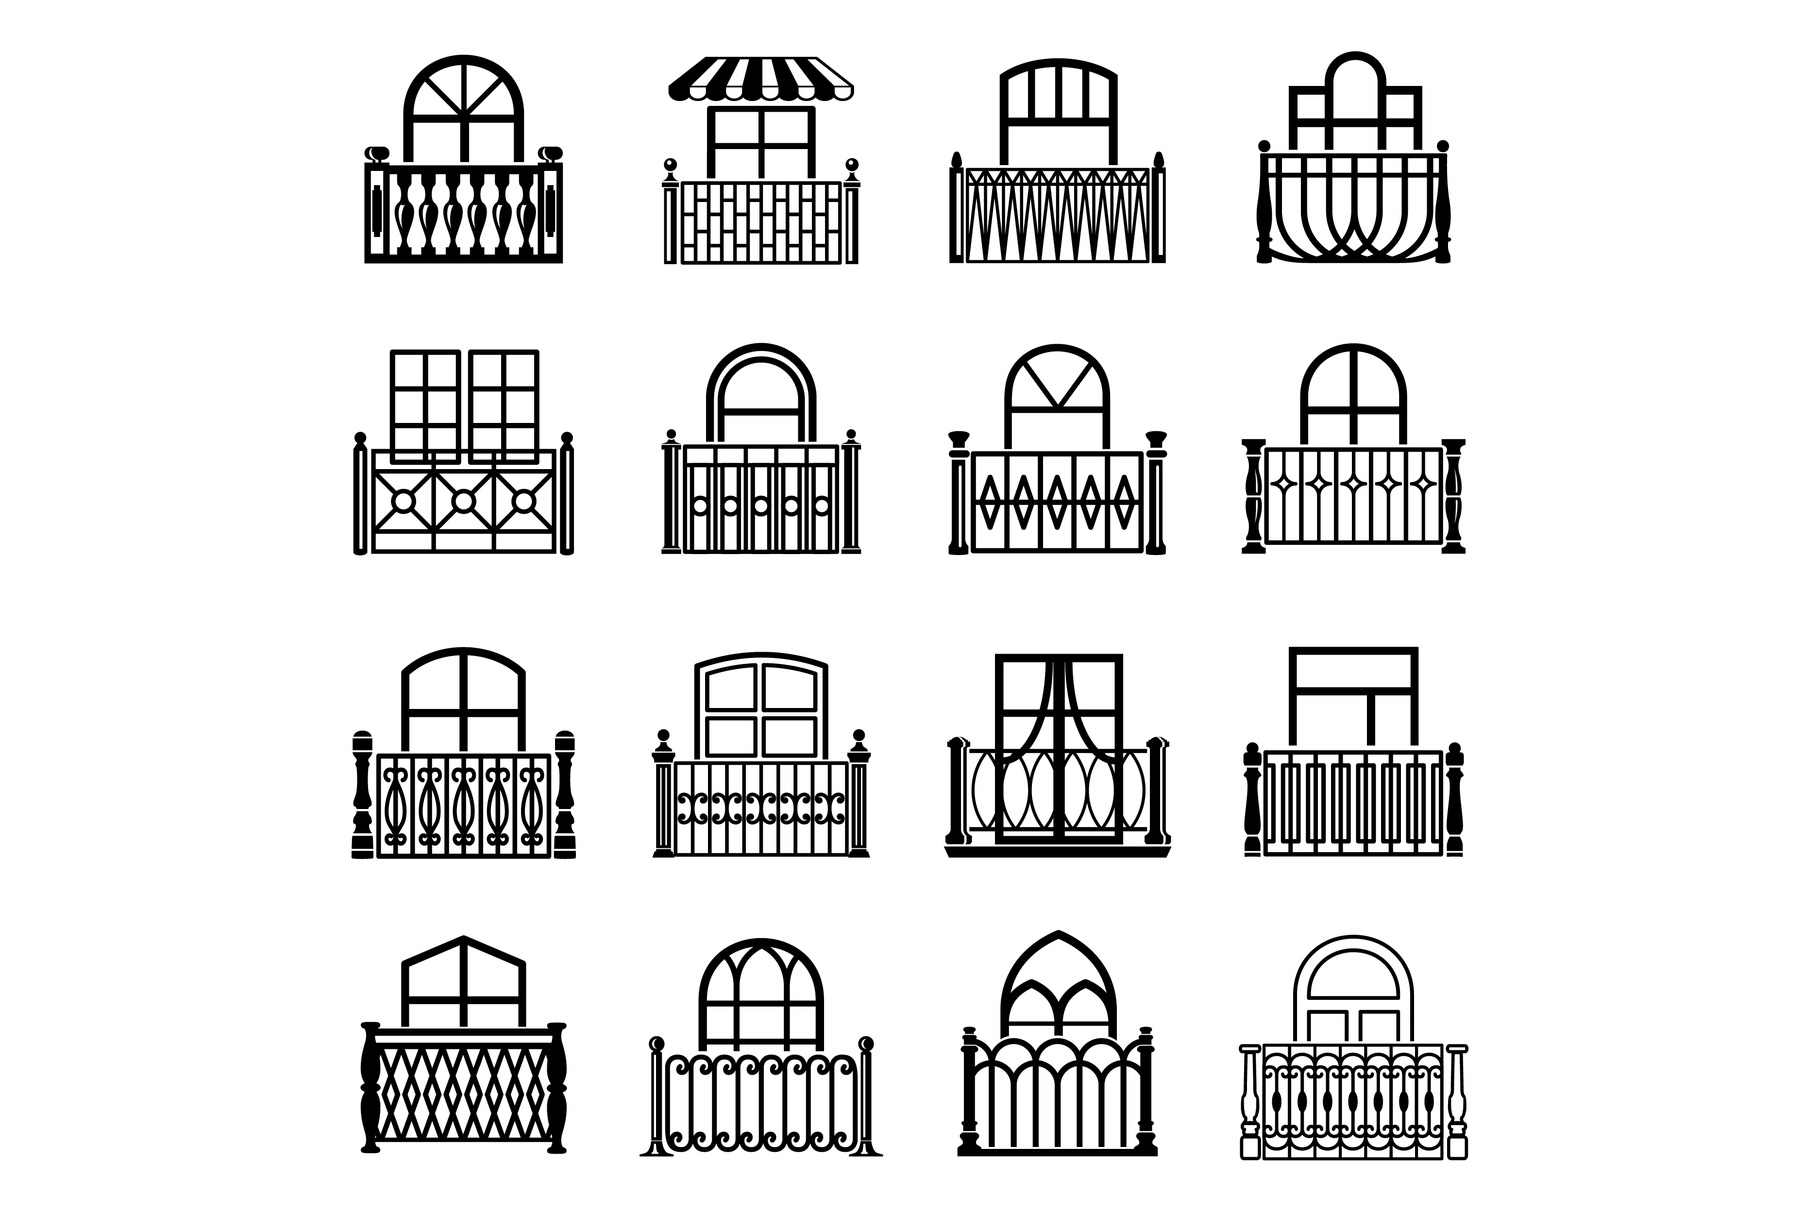 Balcony window icons set, simple style example image 1